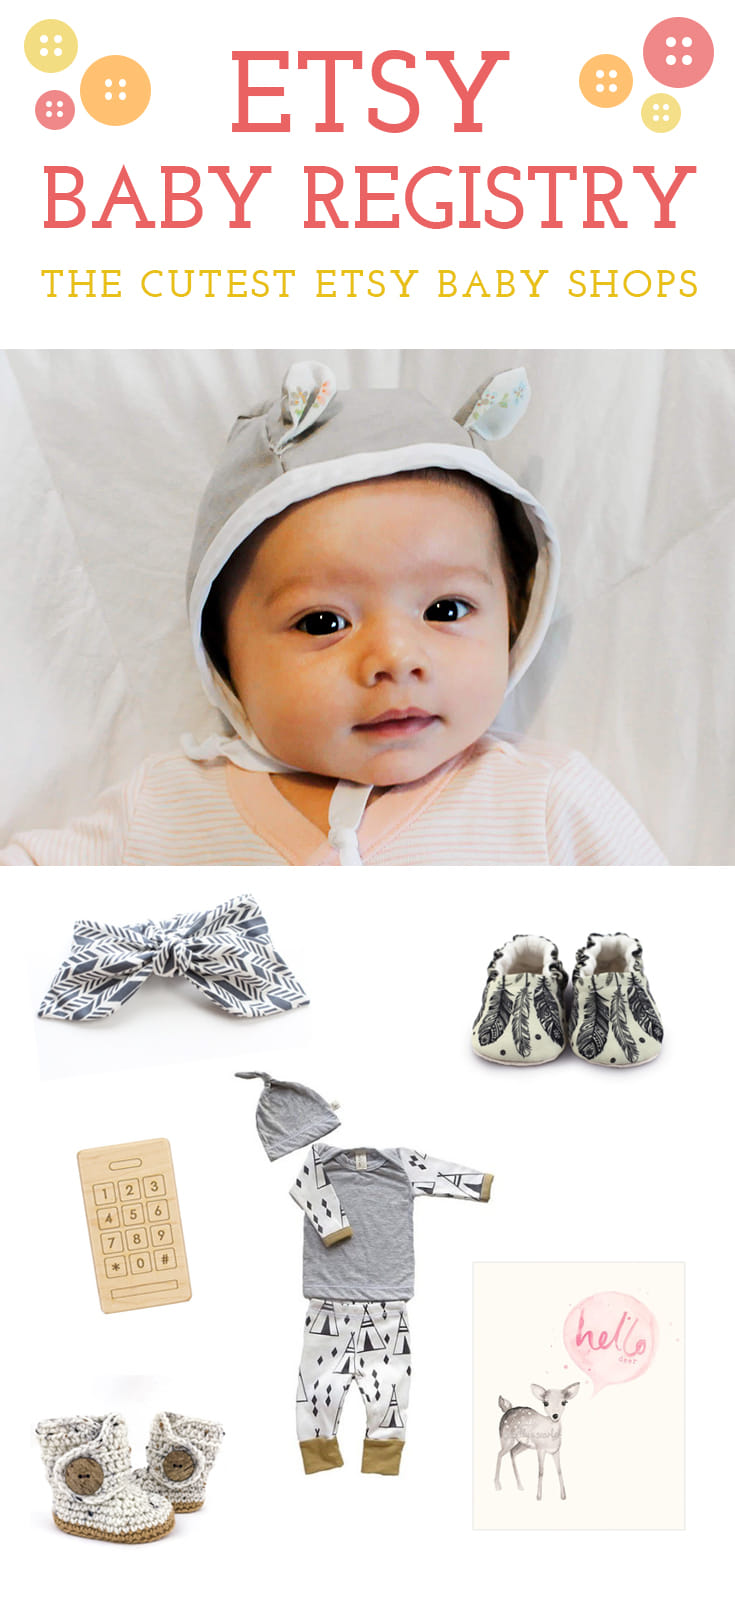 Think outside the big-box. Add unique baby items from artists, designers, and crafters to your baby registry.